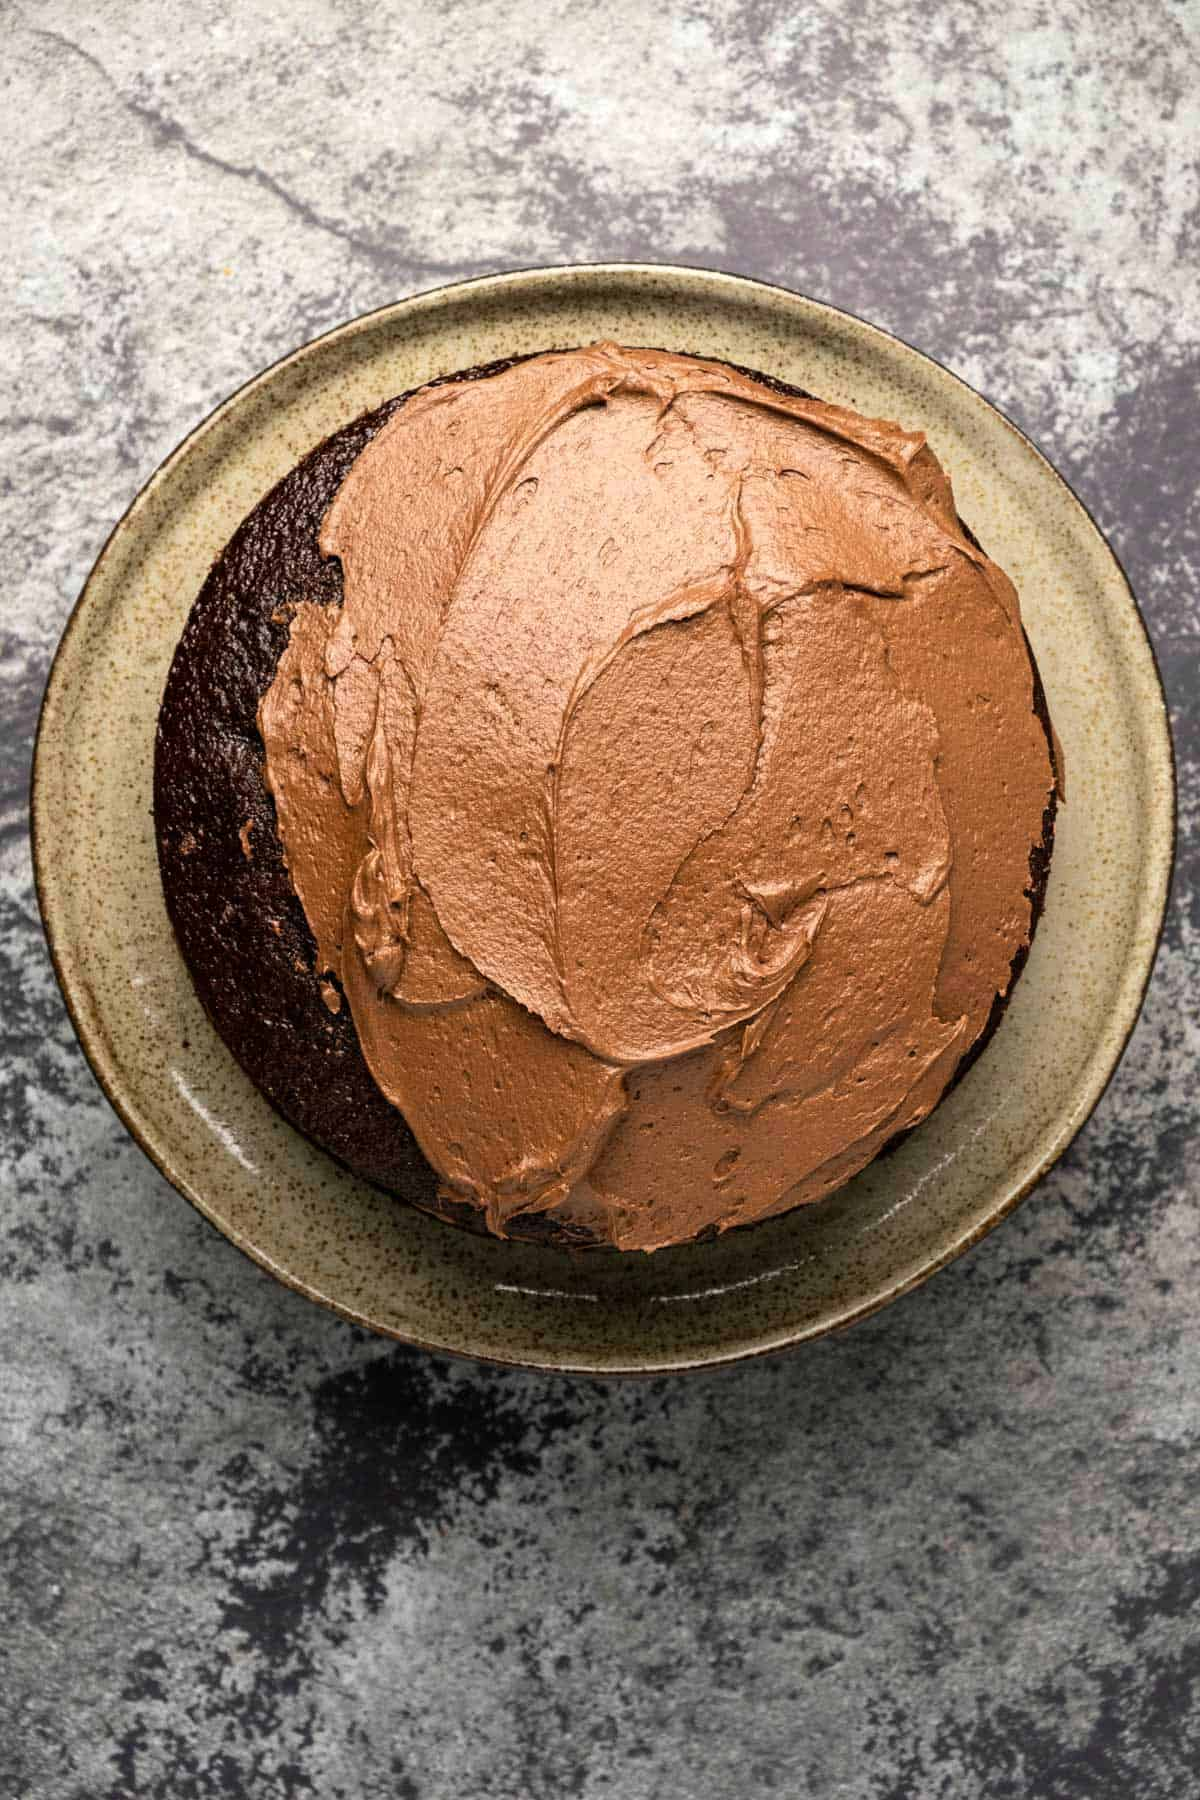 Chocolate buttercream frosting spread onto a chocolate cake.